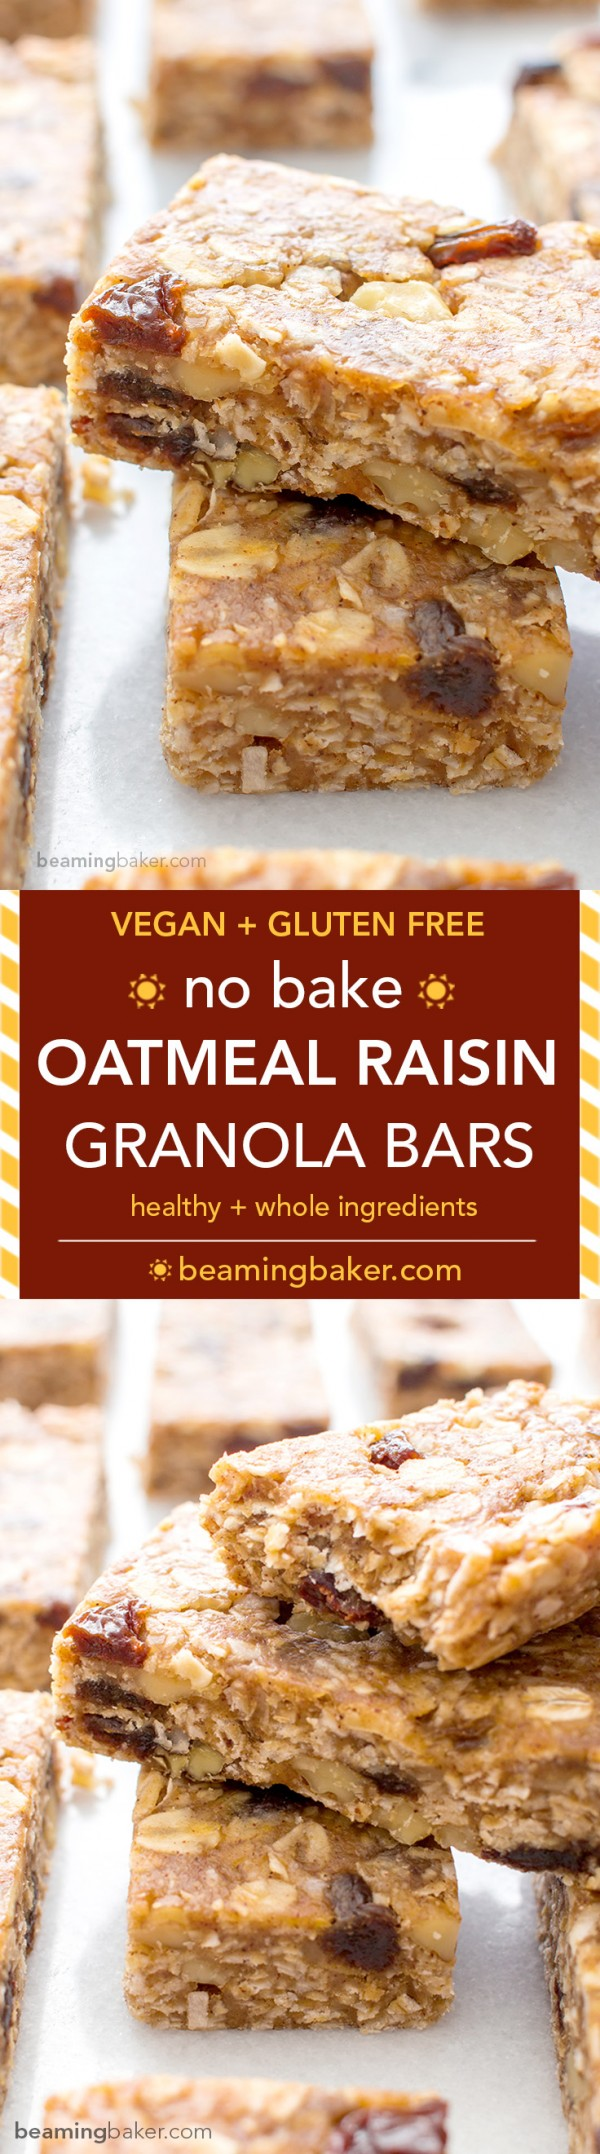 Get the recipe Oatmeal Raisin Granola Bars @recipes_to_go